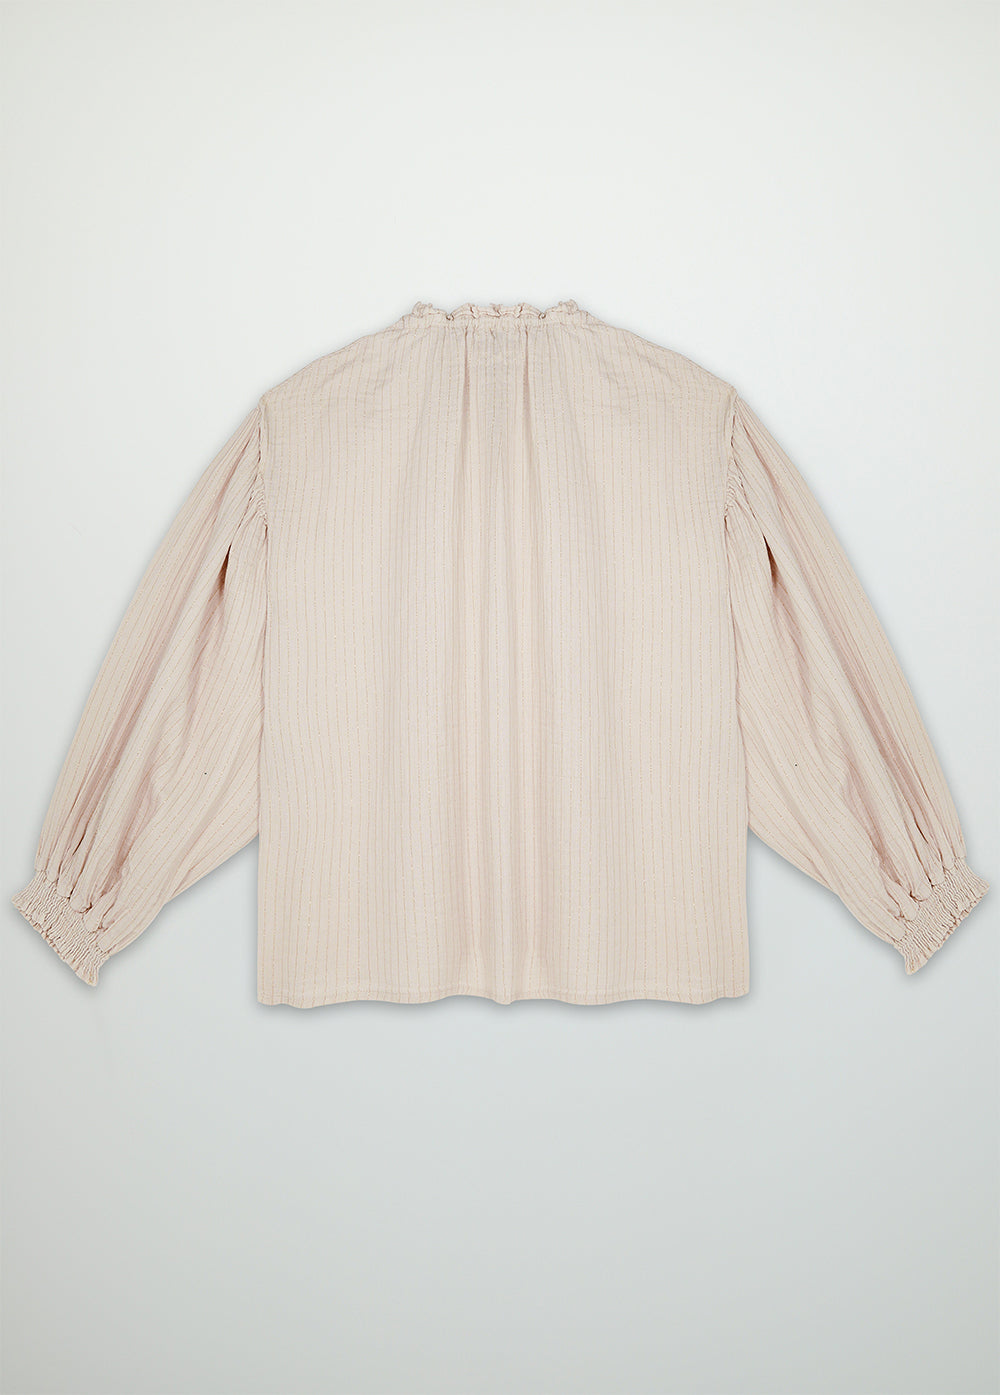 Olivia woman blush blouse